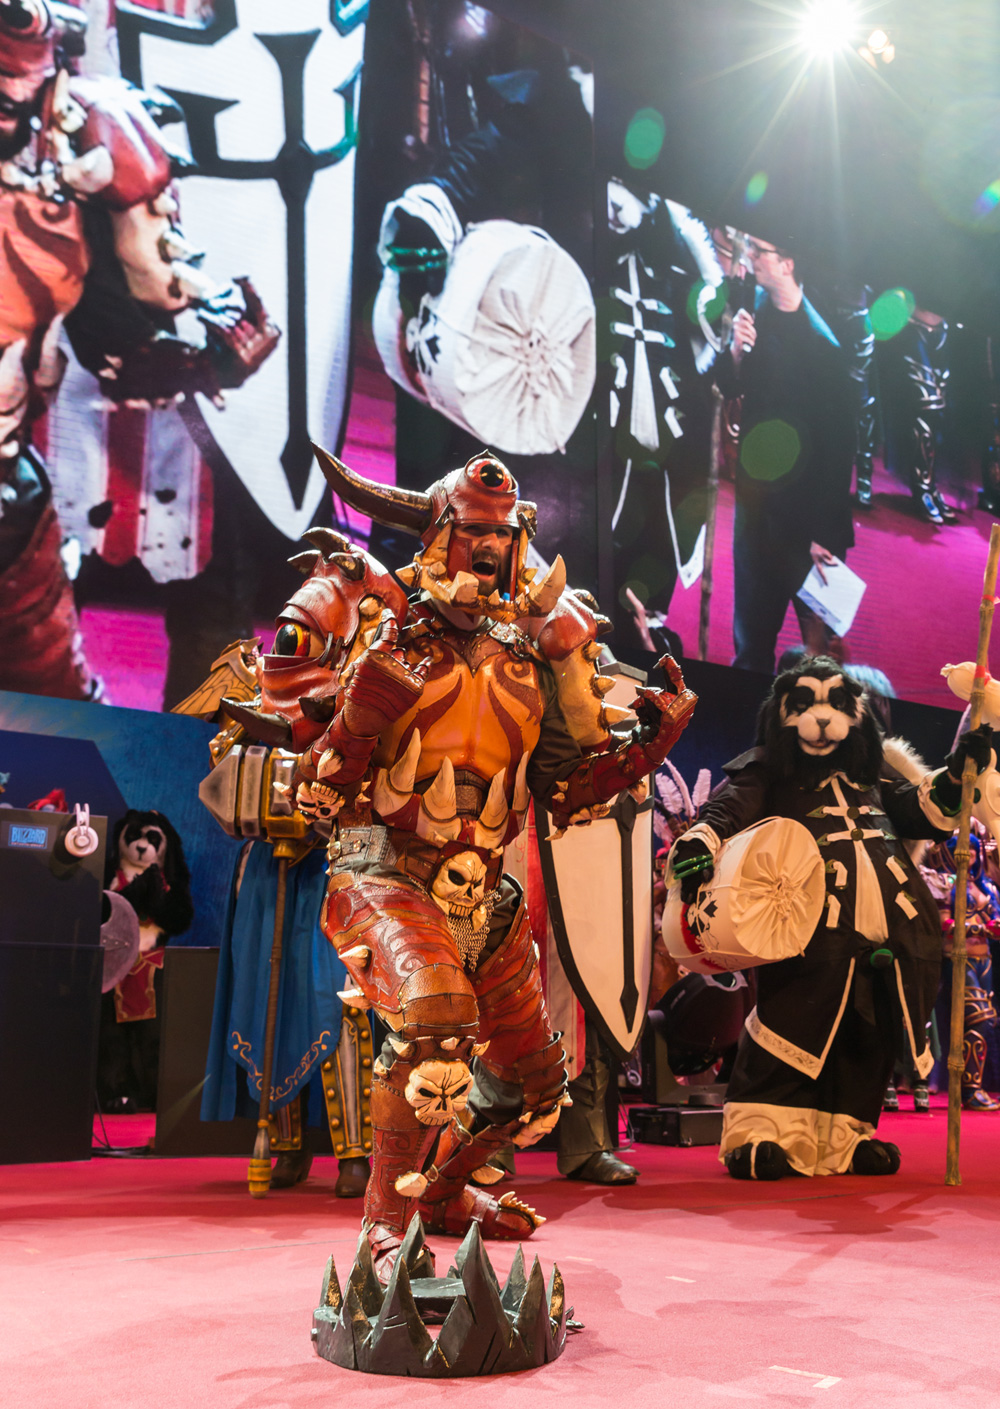 blizzard costume winners 2014 4